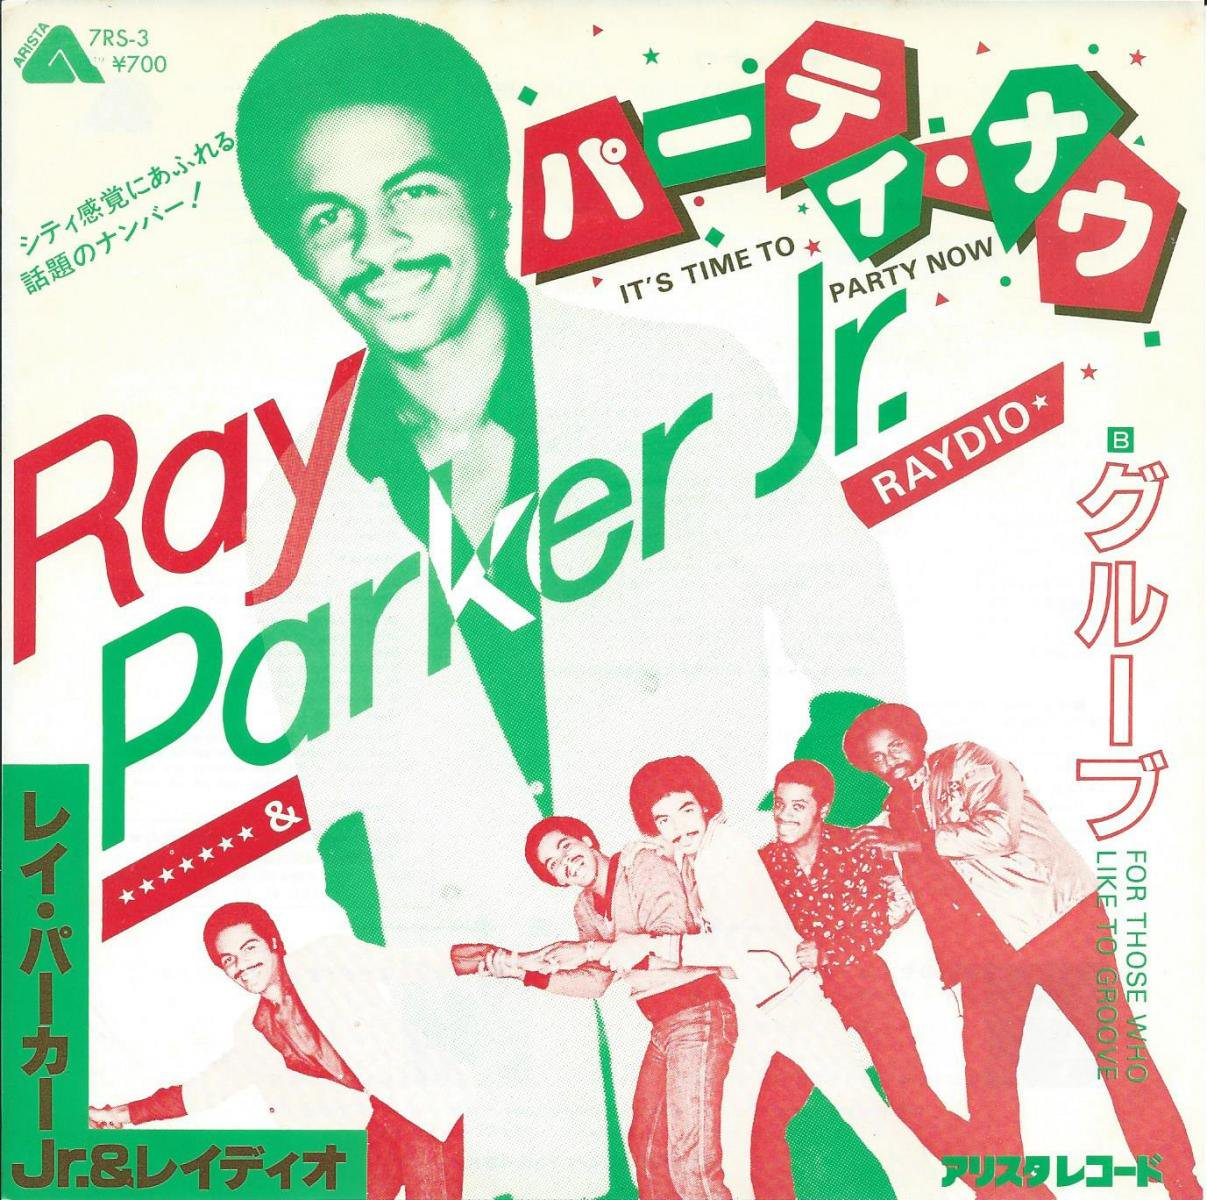 レイ・パーカーJr.& レイディオ RAY PARKER JR.AND RAYDIO / パーティ・ナウ IT'S TIME TO PARTY NOW (7